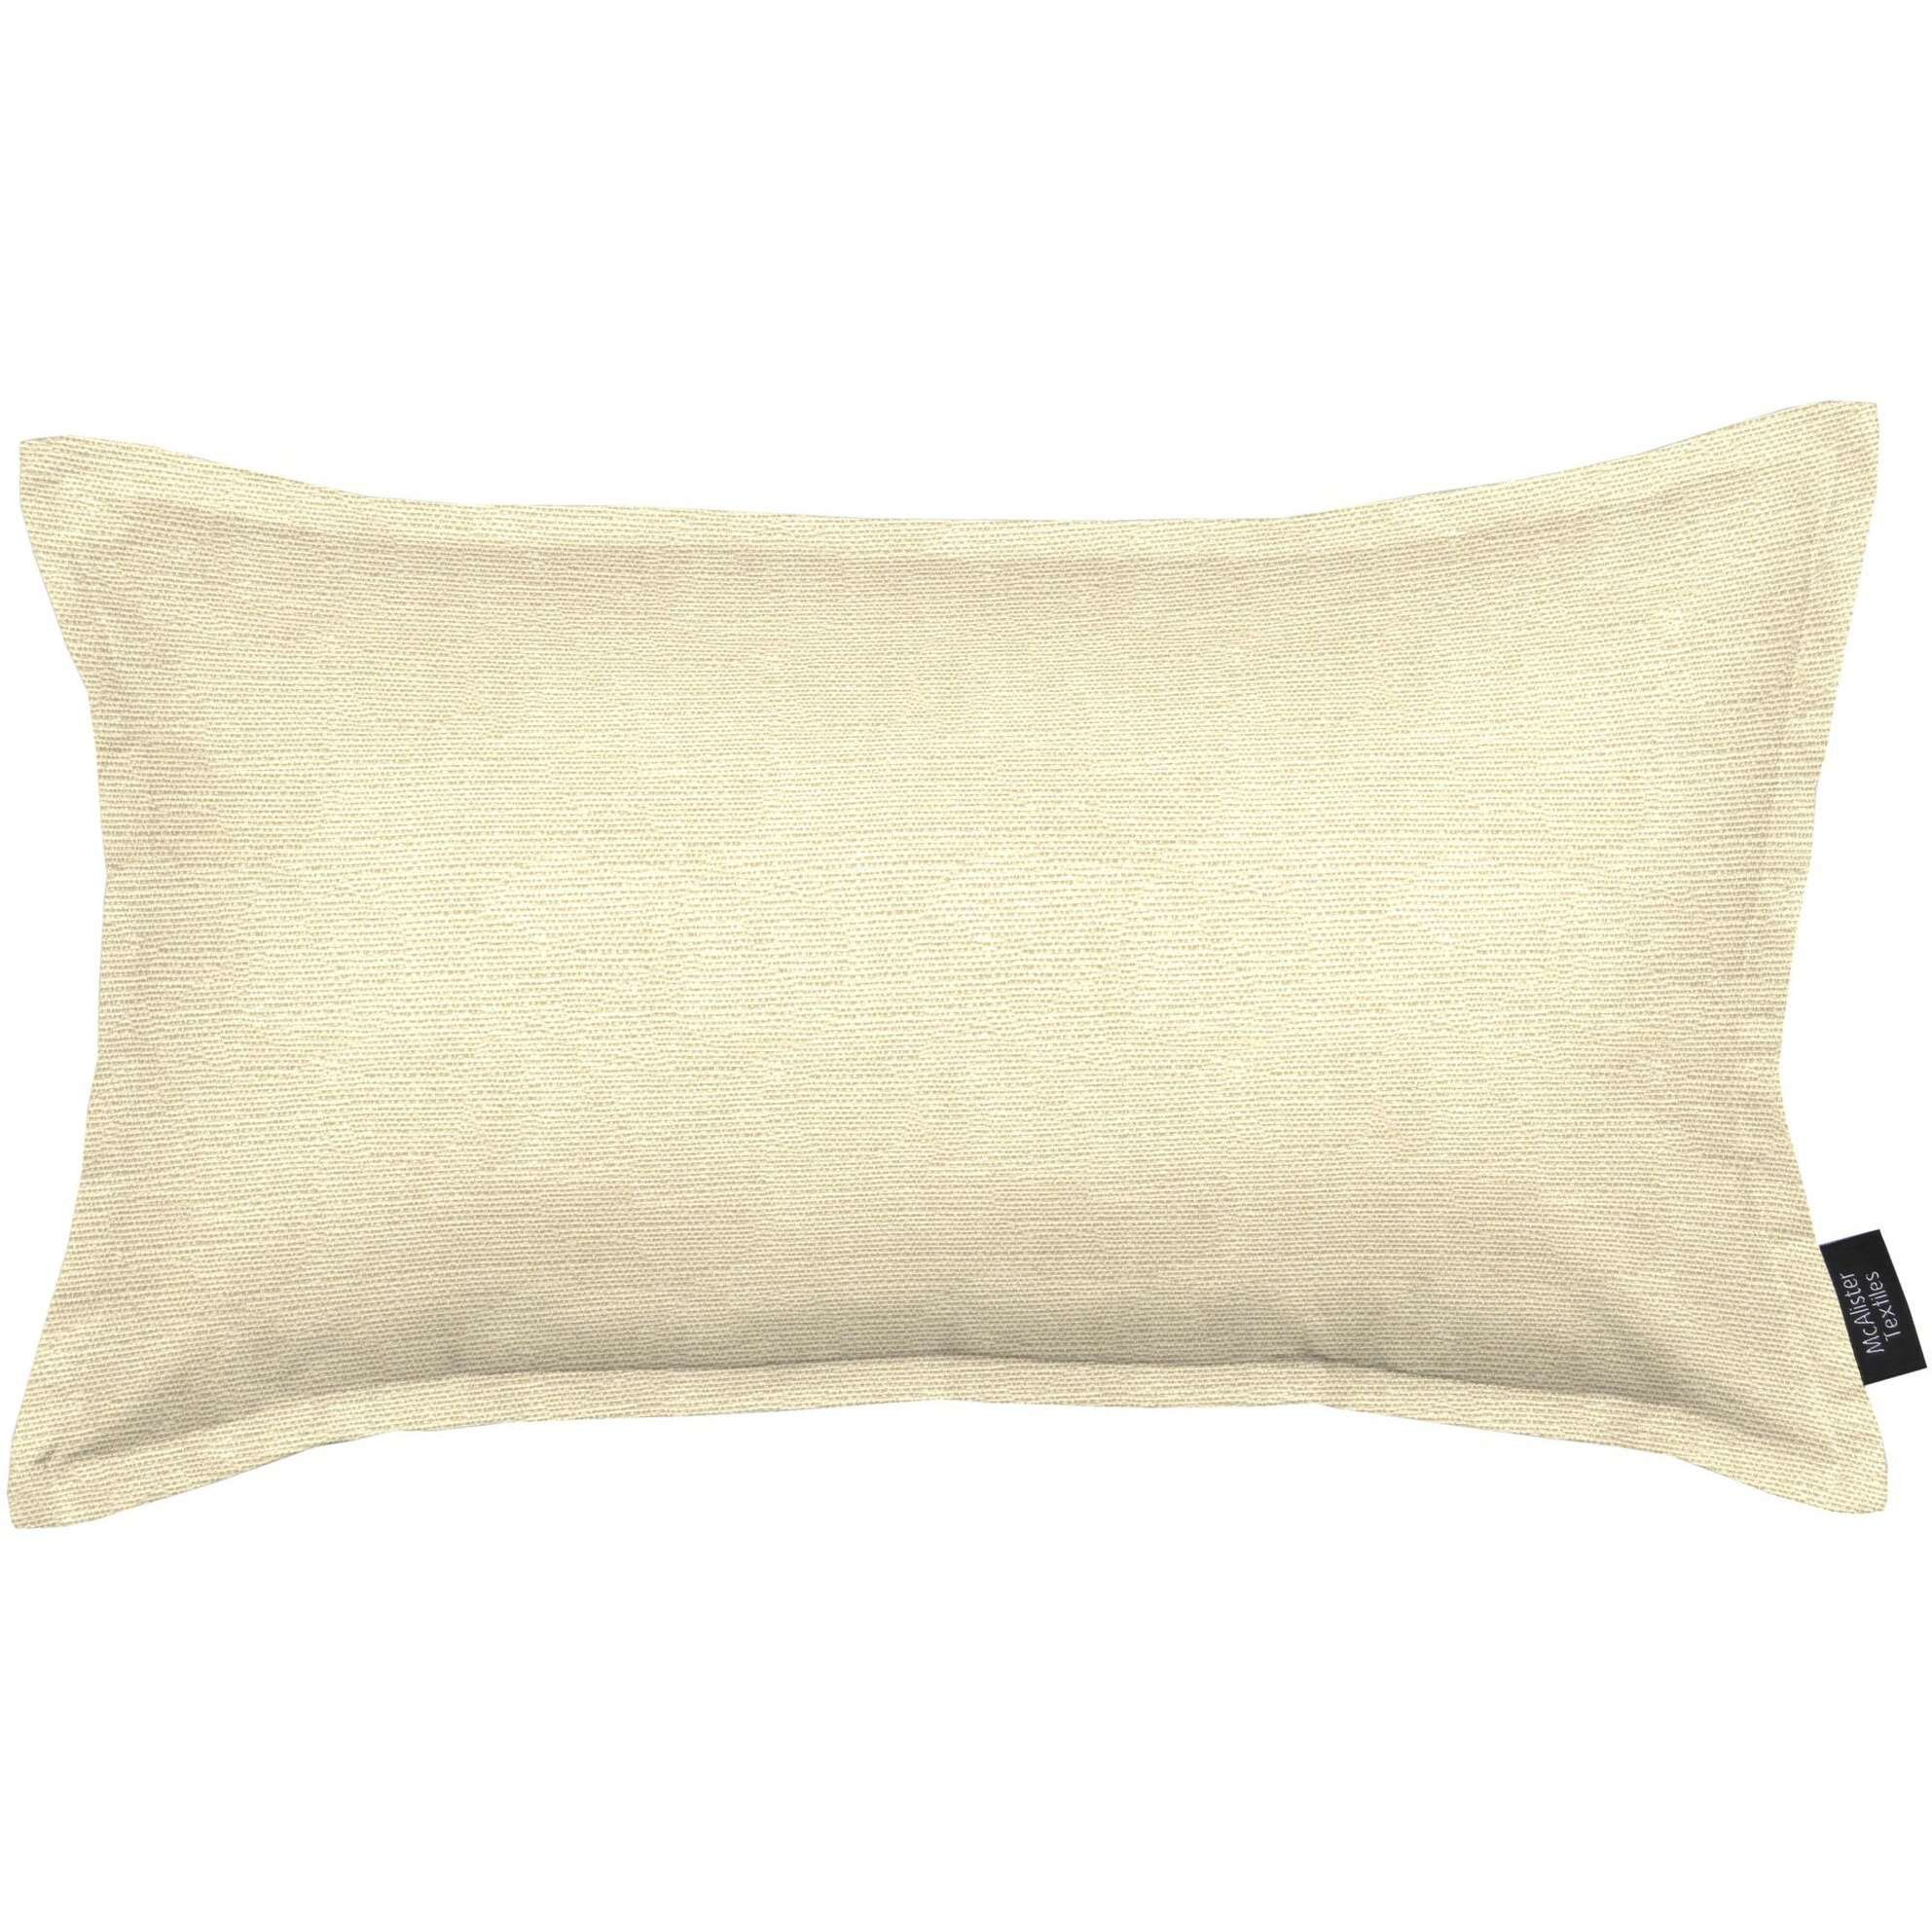 McAlister Textiles Savannah Cream Gold Pillow Pillow Cover Only 50cm x 30cm